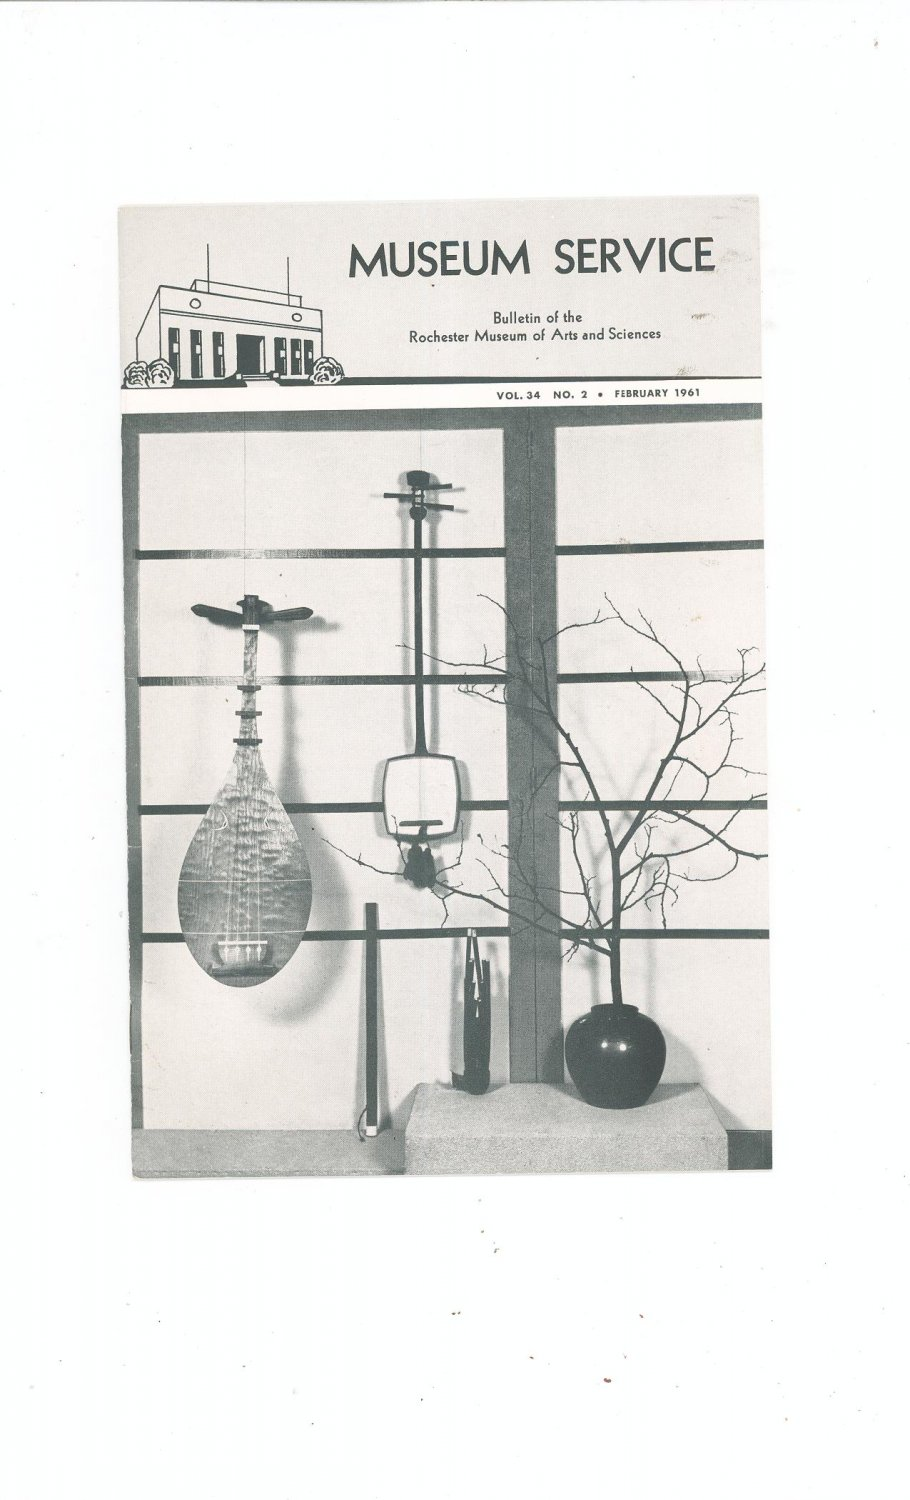 Vintage Museum Service Vol. 34 No. 2 February 1961 Rochester Arts & Science Bulletin